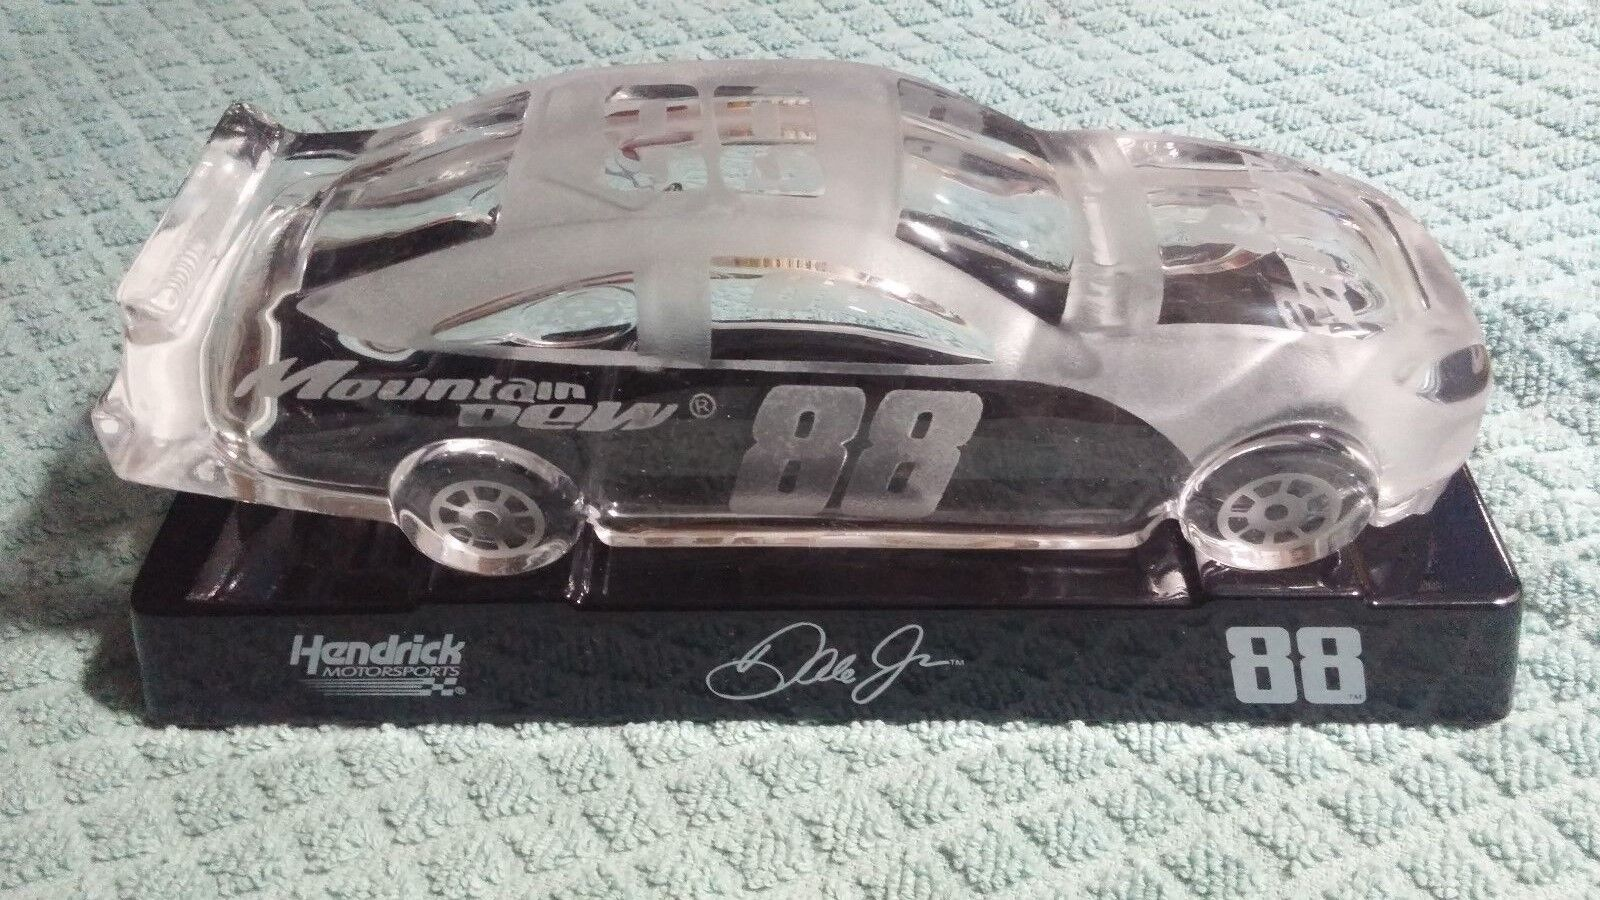 Dale Earnhardt Jr Crystal Car -   88 - with display stand